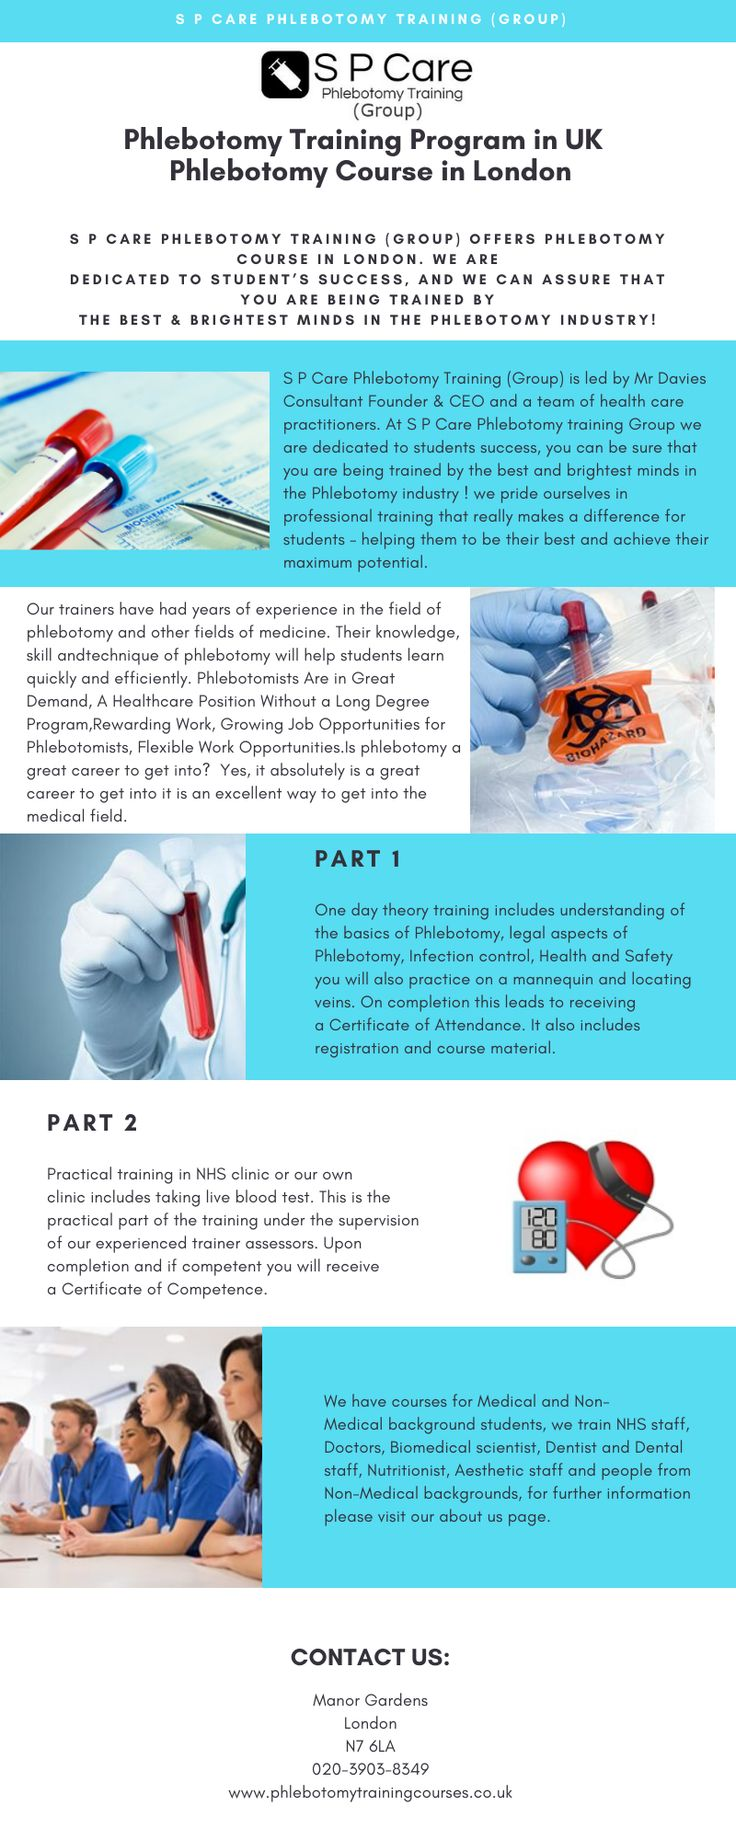 Are you looking for the best phlebotomy training program